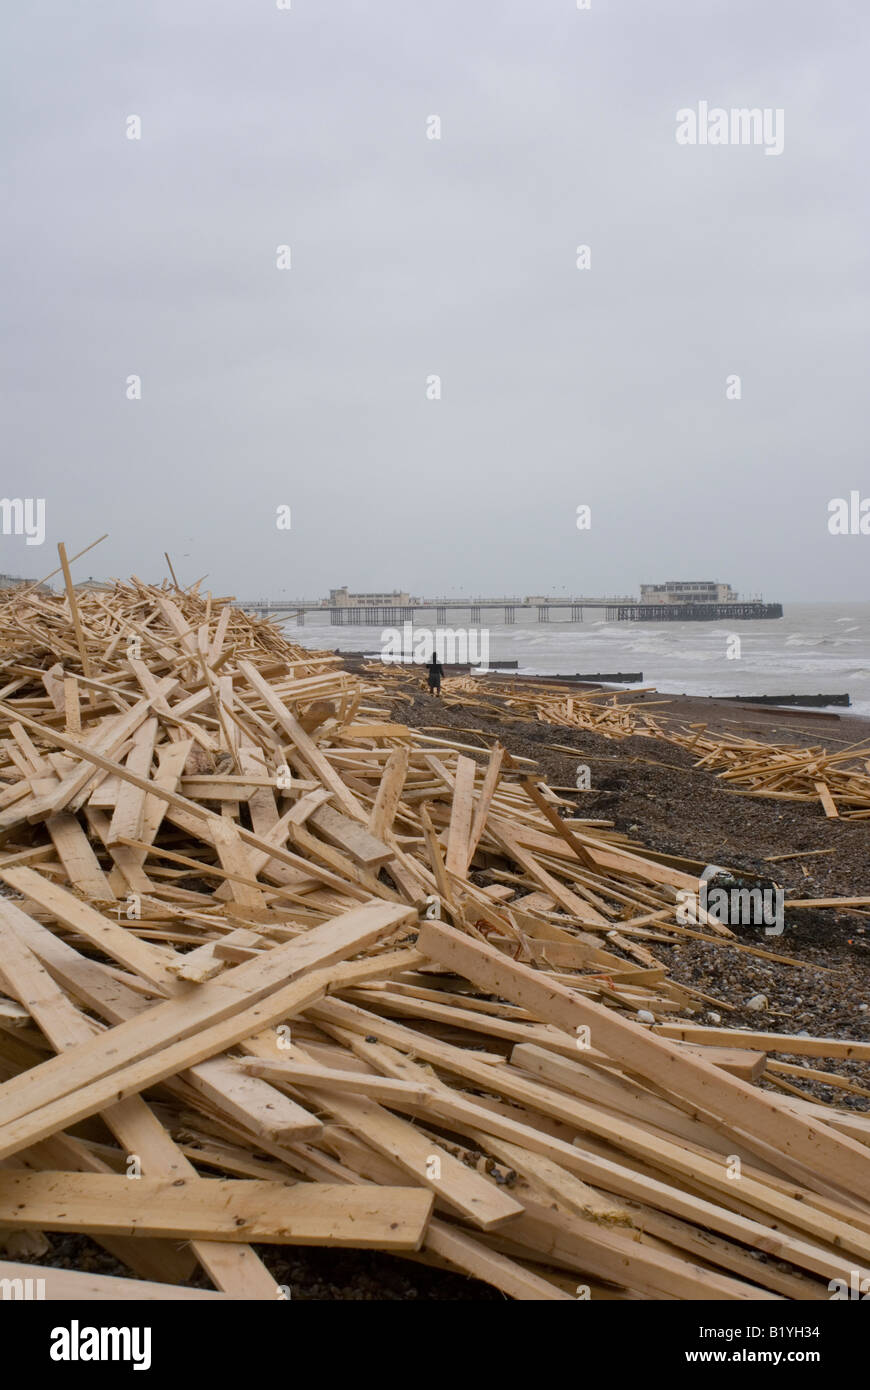 Wooden planks washed up on Worthing beach from a shipwreck. - Stock Image